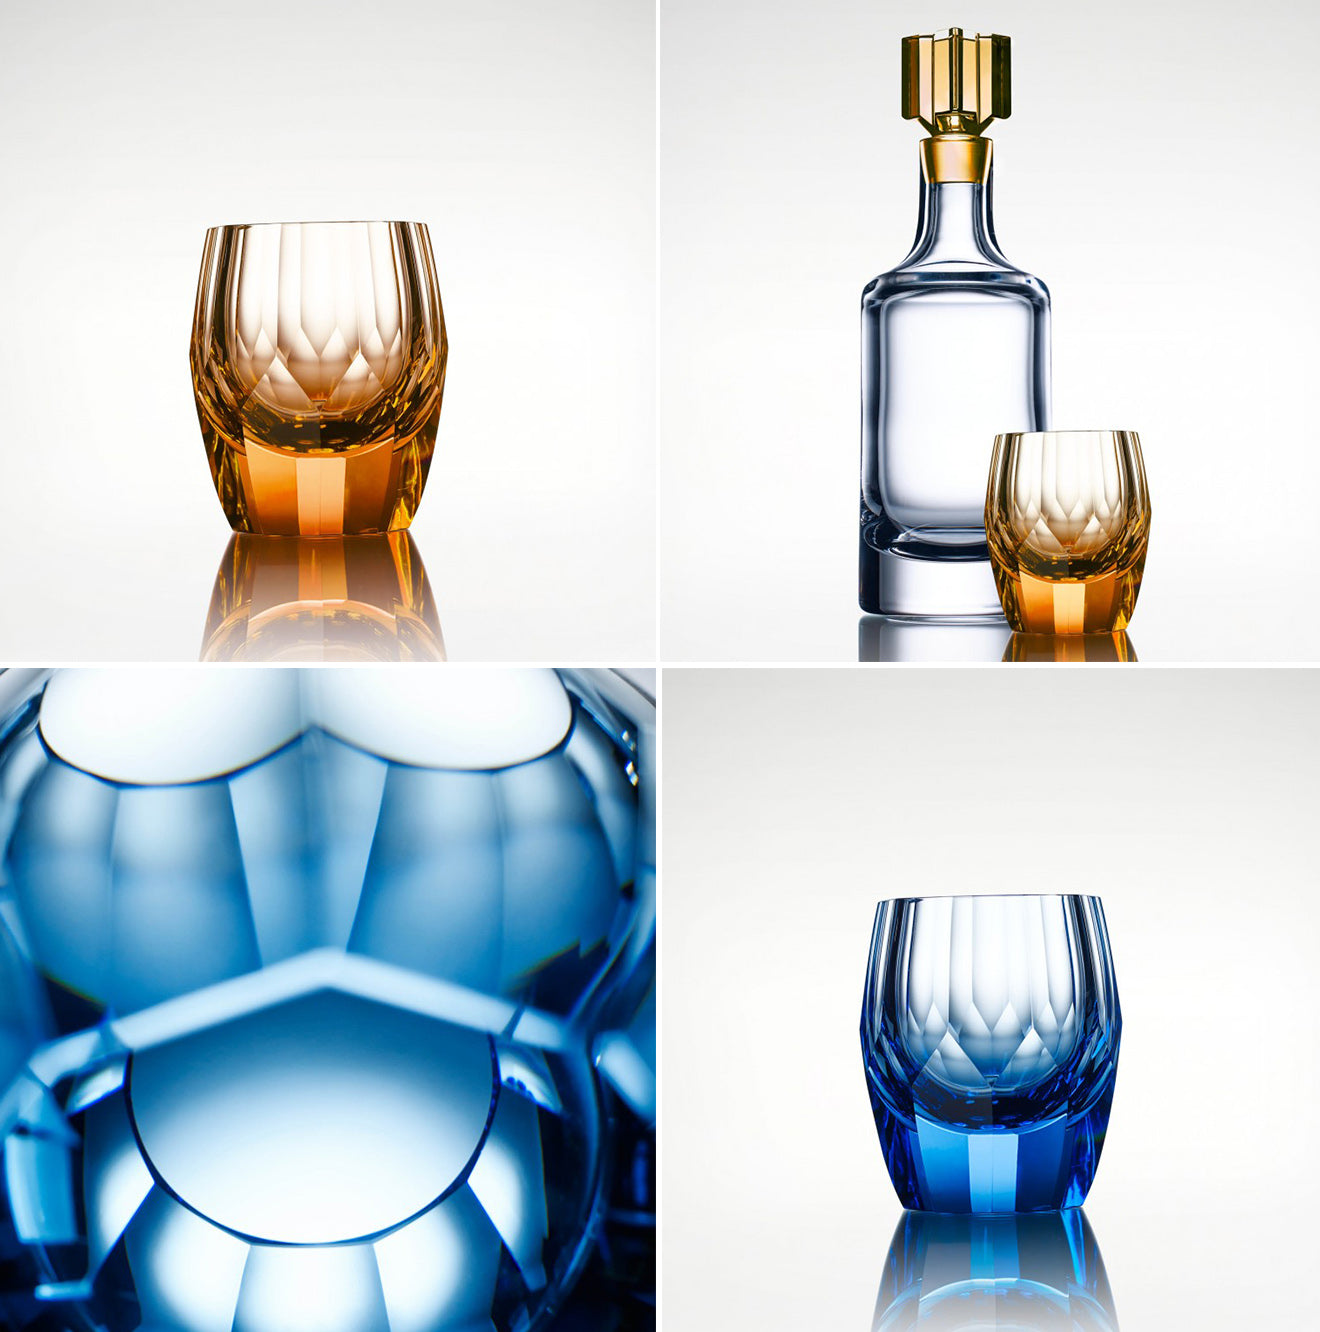 Luxury glassware from LINLEY hand cut and created designs from the Girih collection